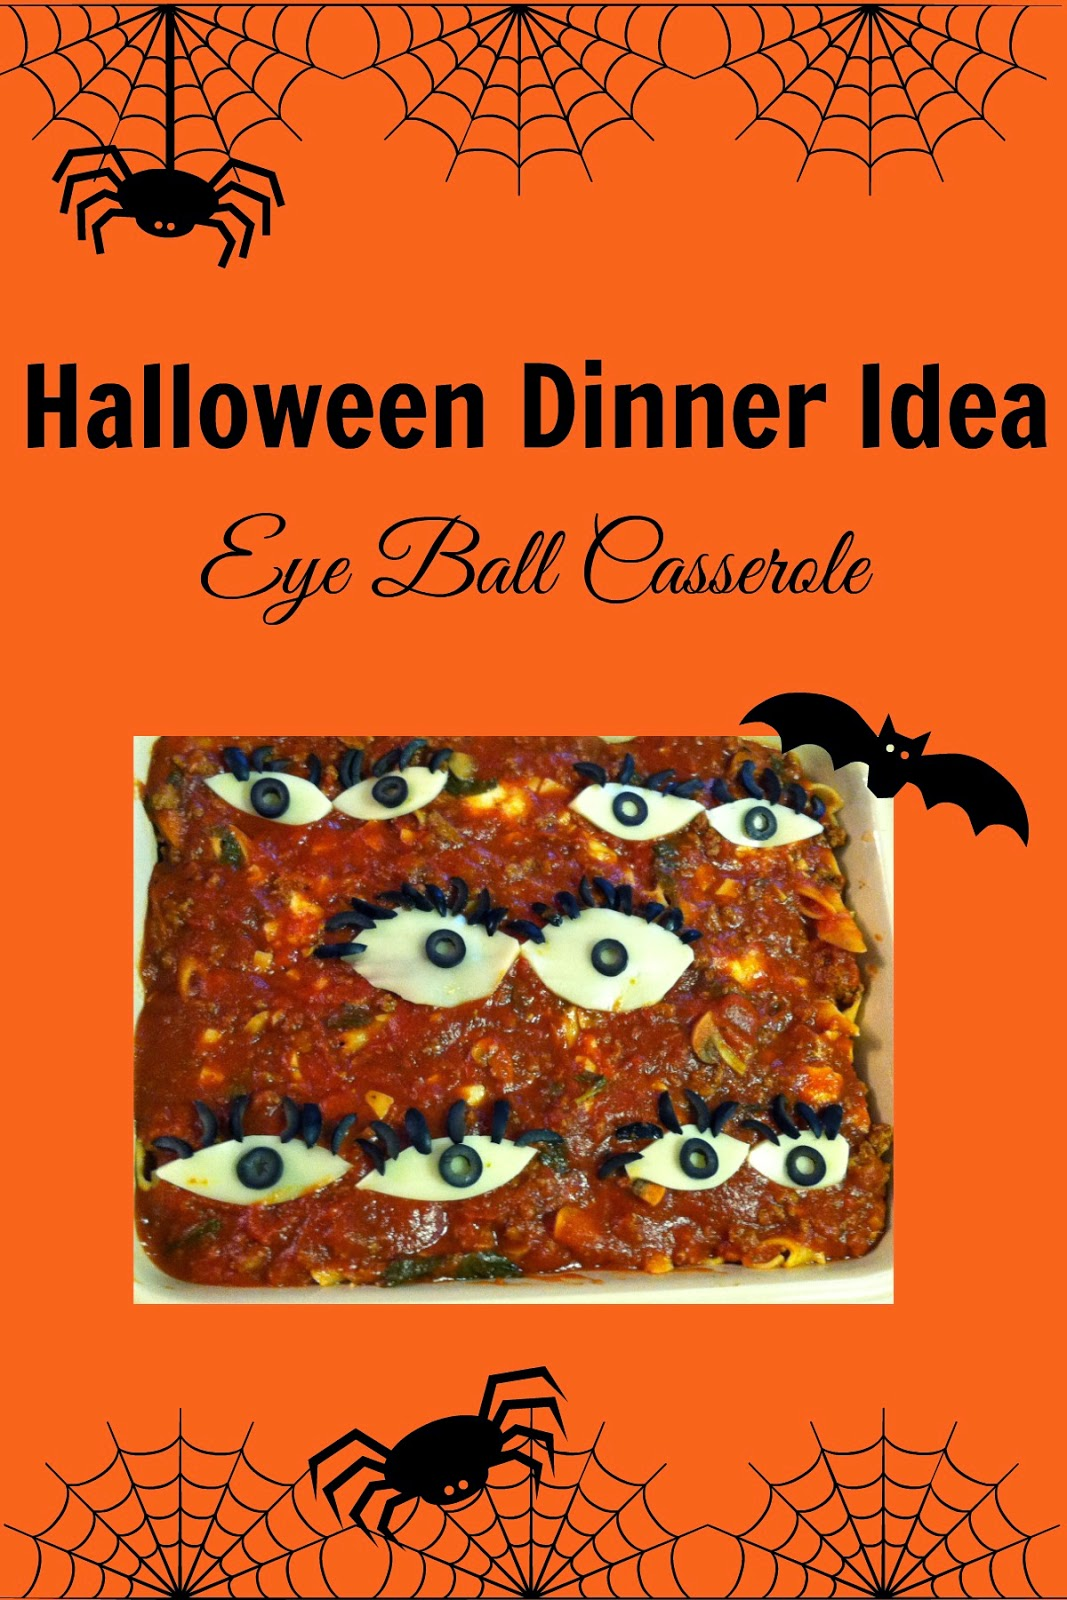 when my kids were little they didnt remember eating the casserole the previous year so i could trick them into thinking we were eating real eyeballs for - Halloween Casserole Recipe Ideas